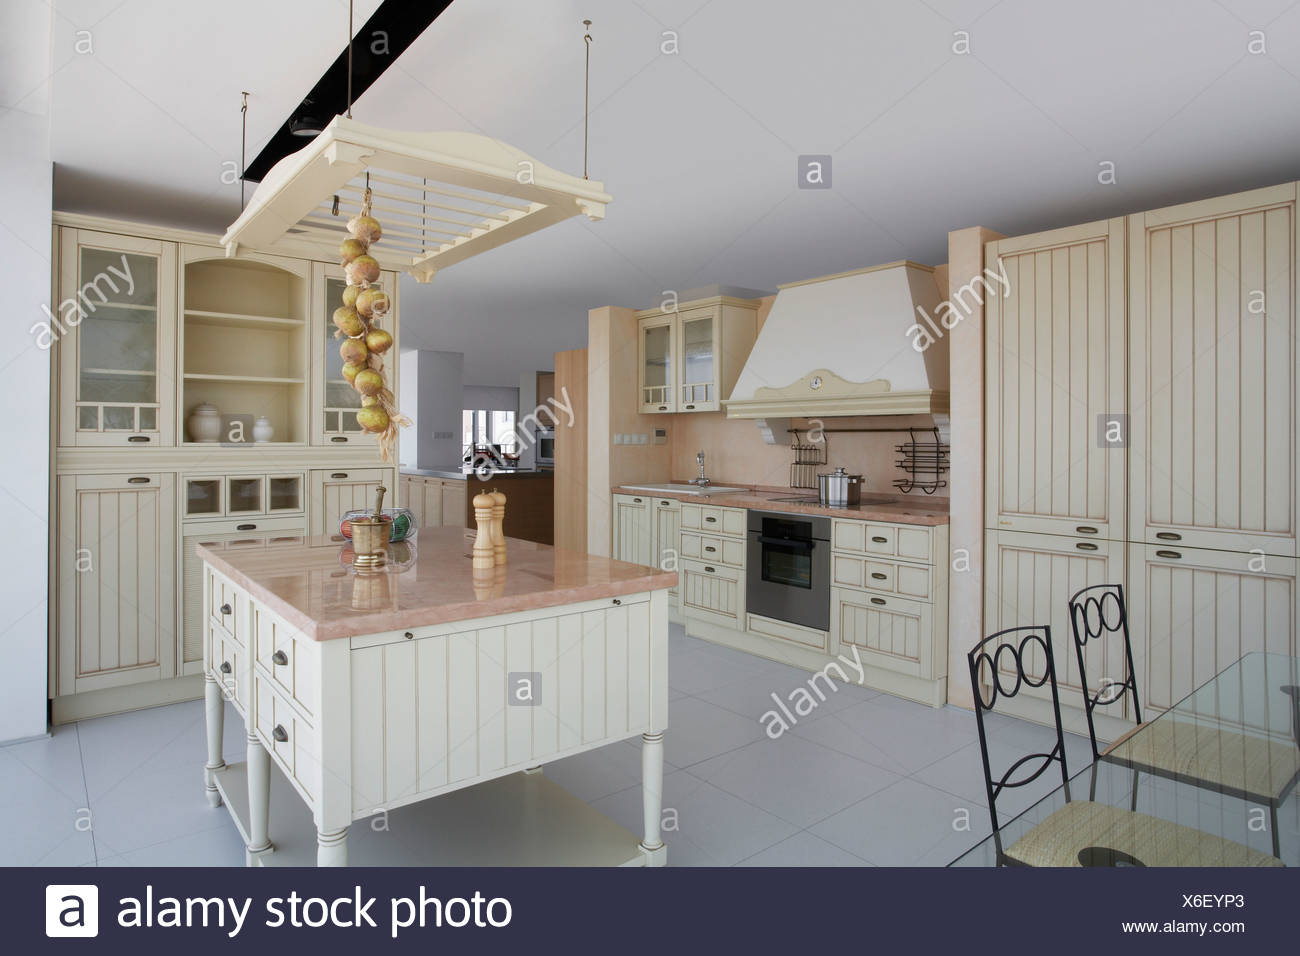 Furniture And Kitchen Store Stock Photos Furniture And Kitchen